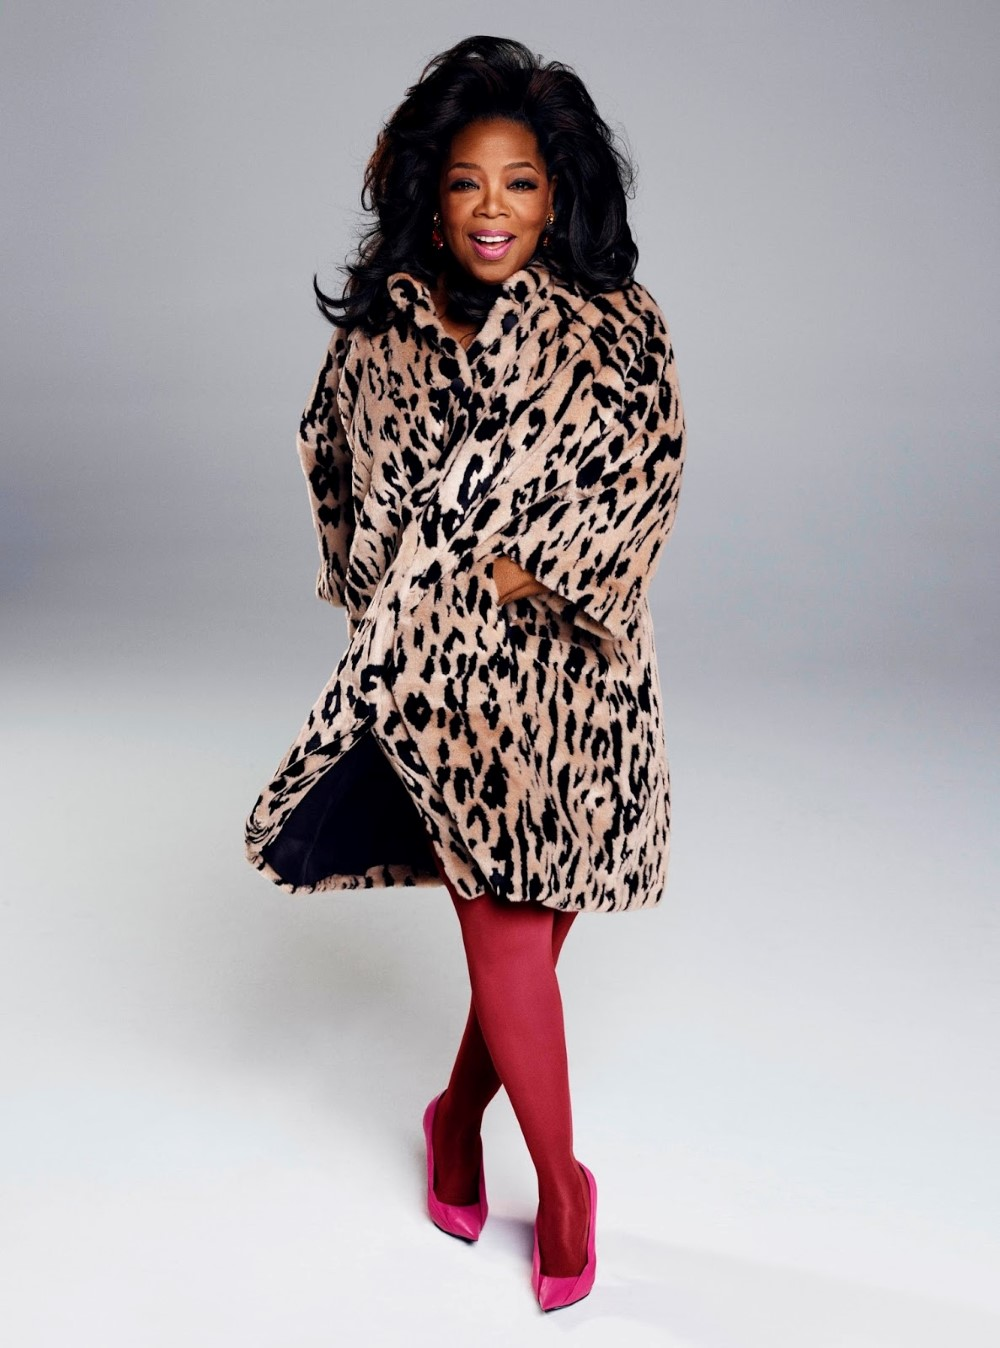 oprah instyle us february 2018 8jpg